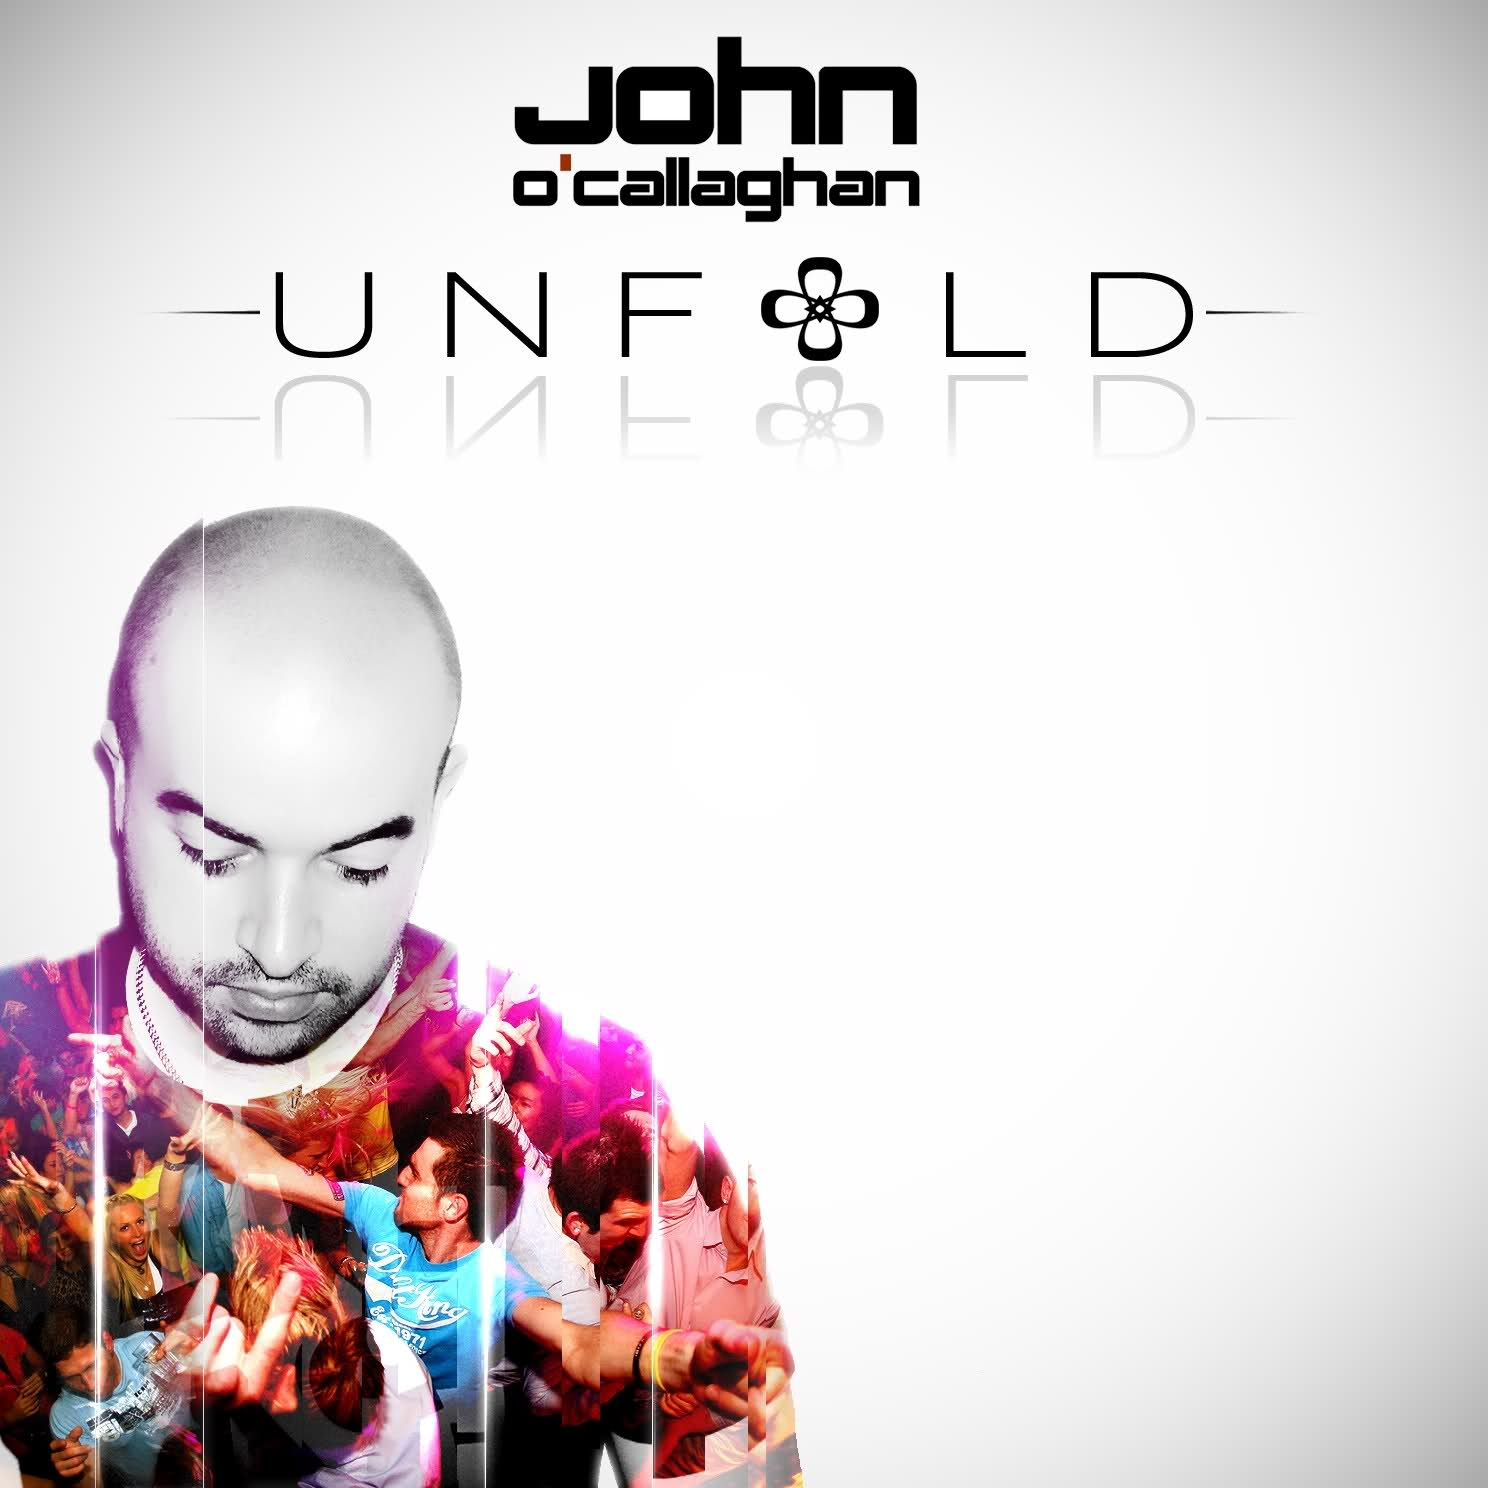 John O'Callaghan-Unfold | damaBeats presents...